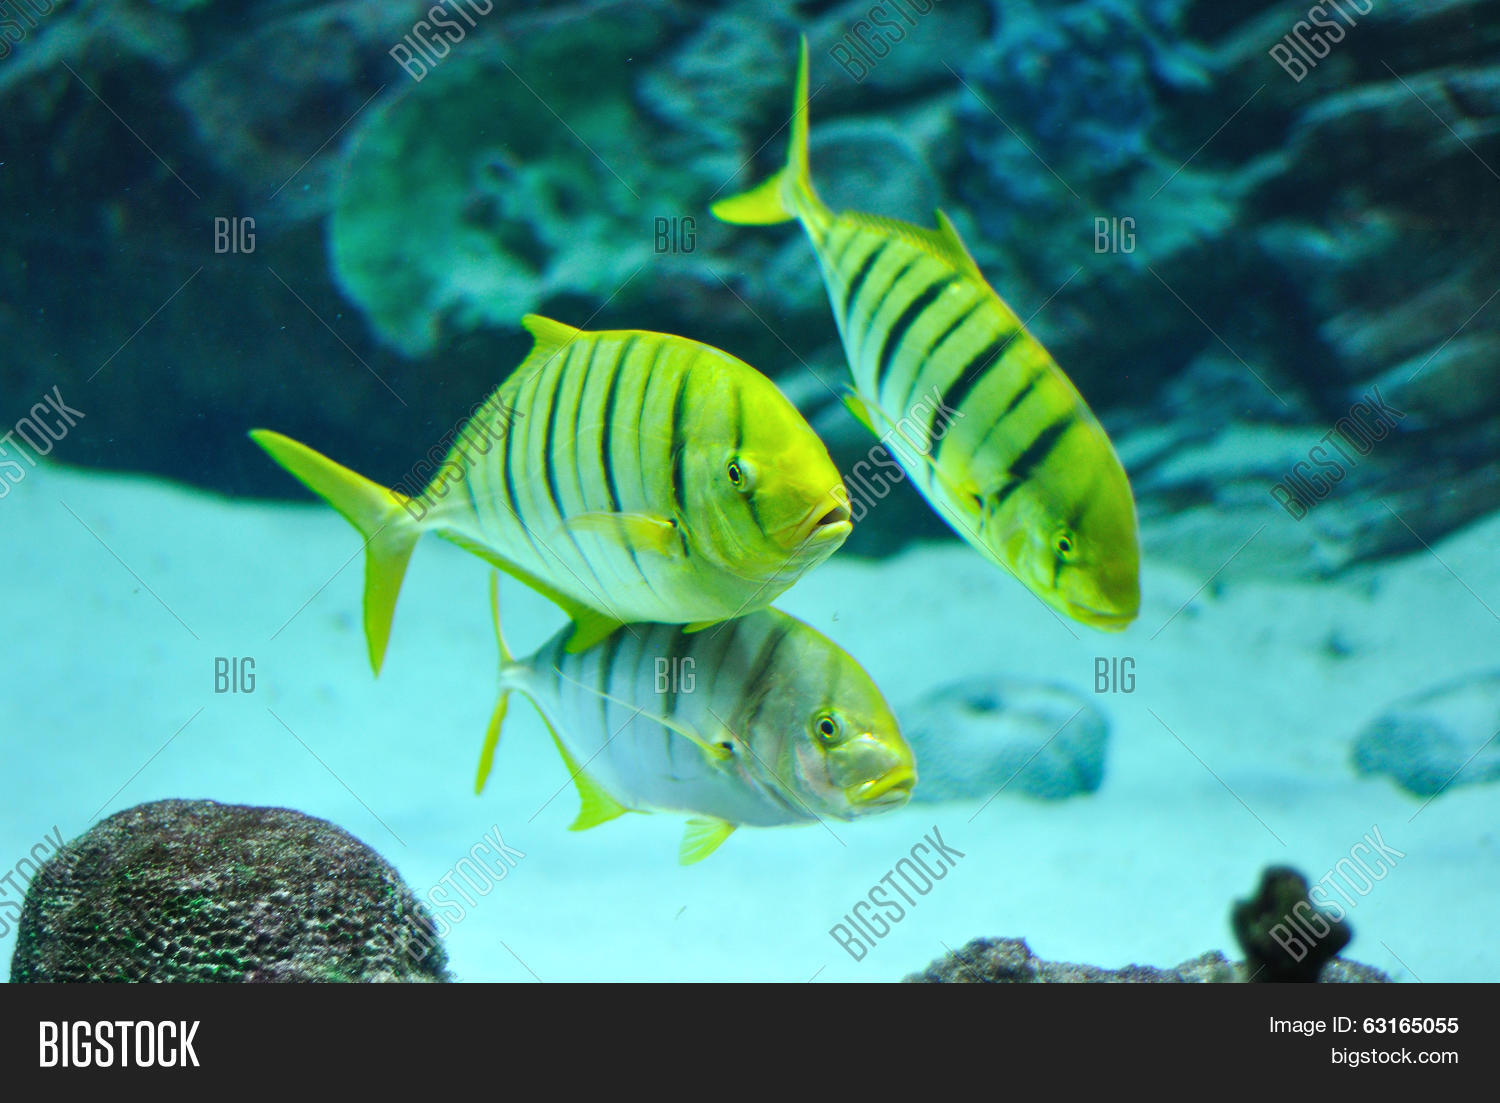 Yellow black striped freshwater fish grateful for